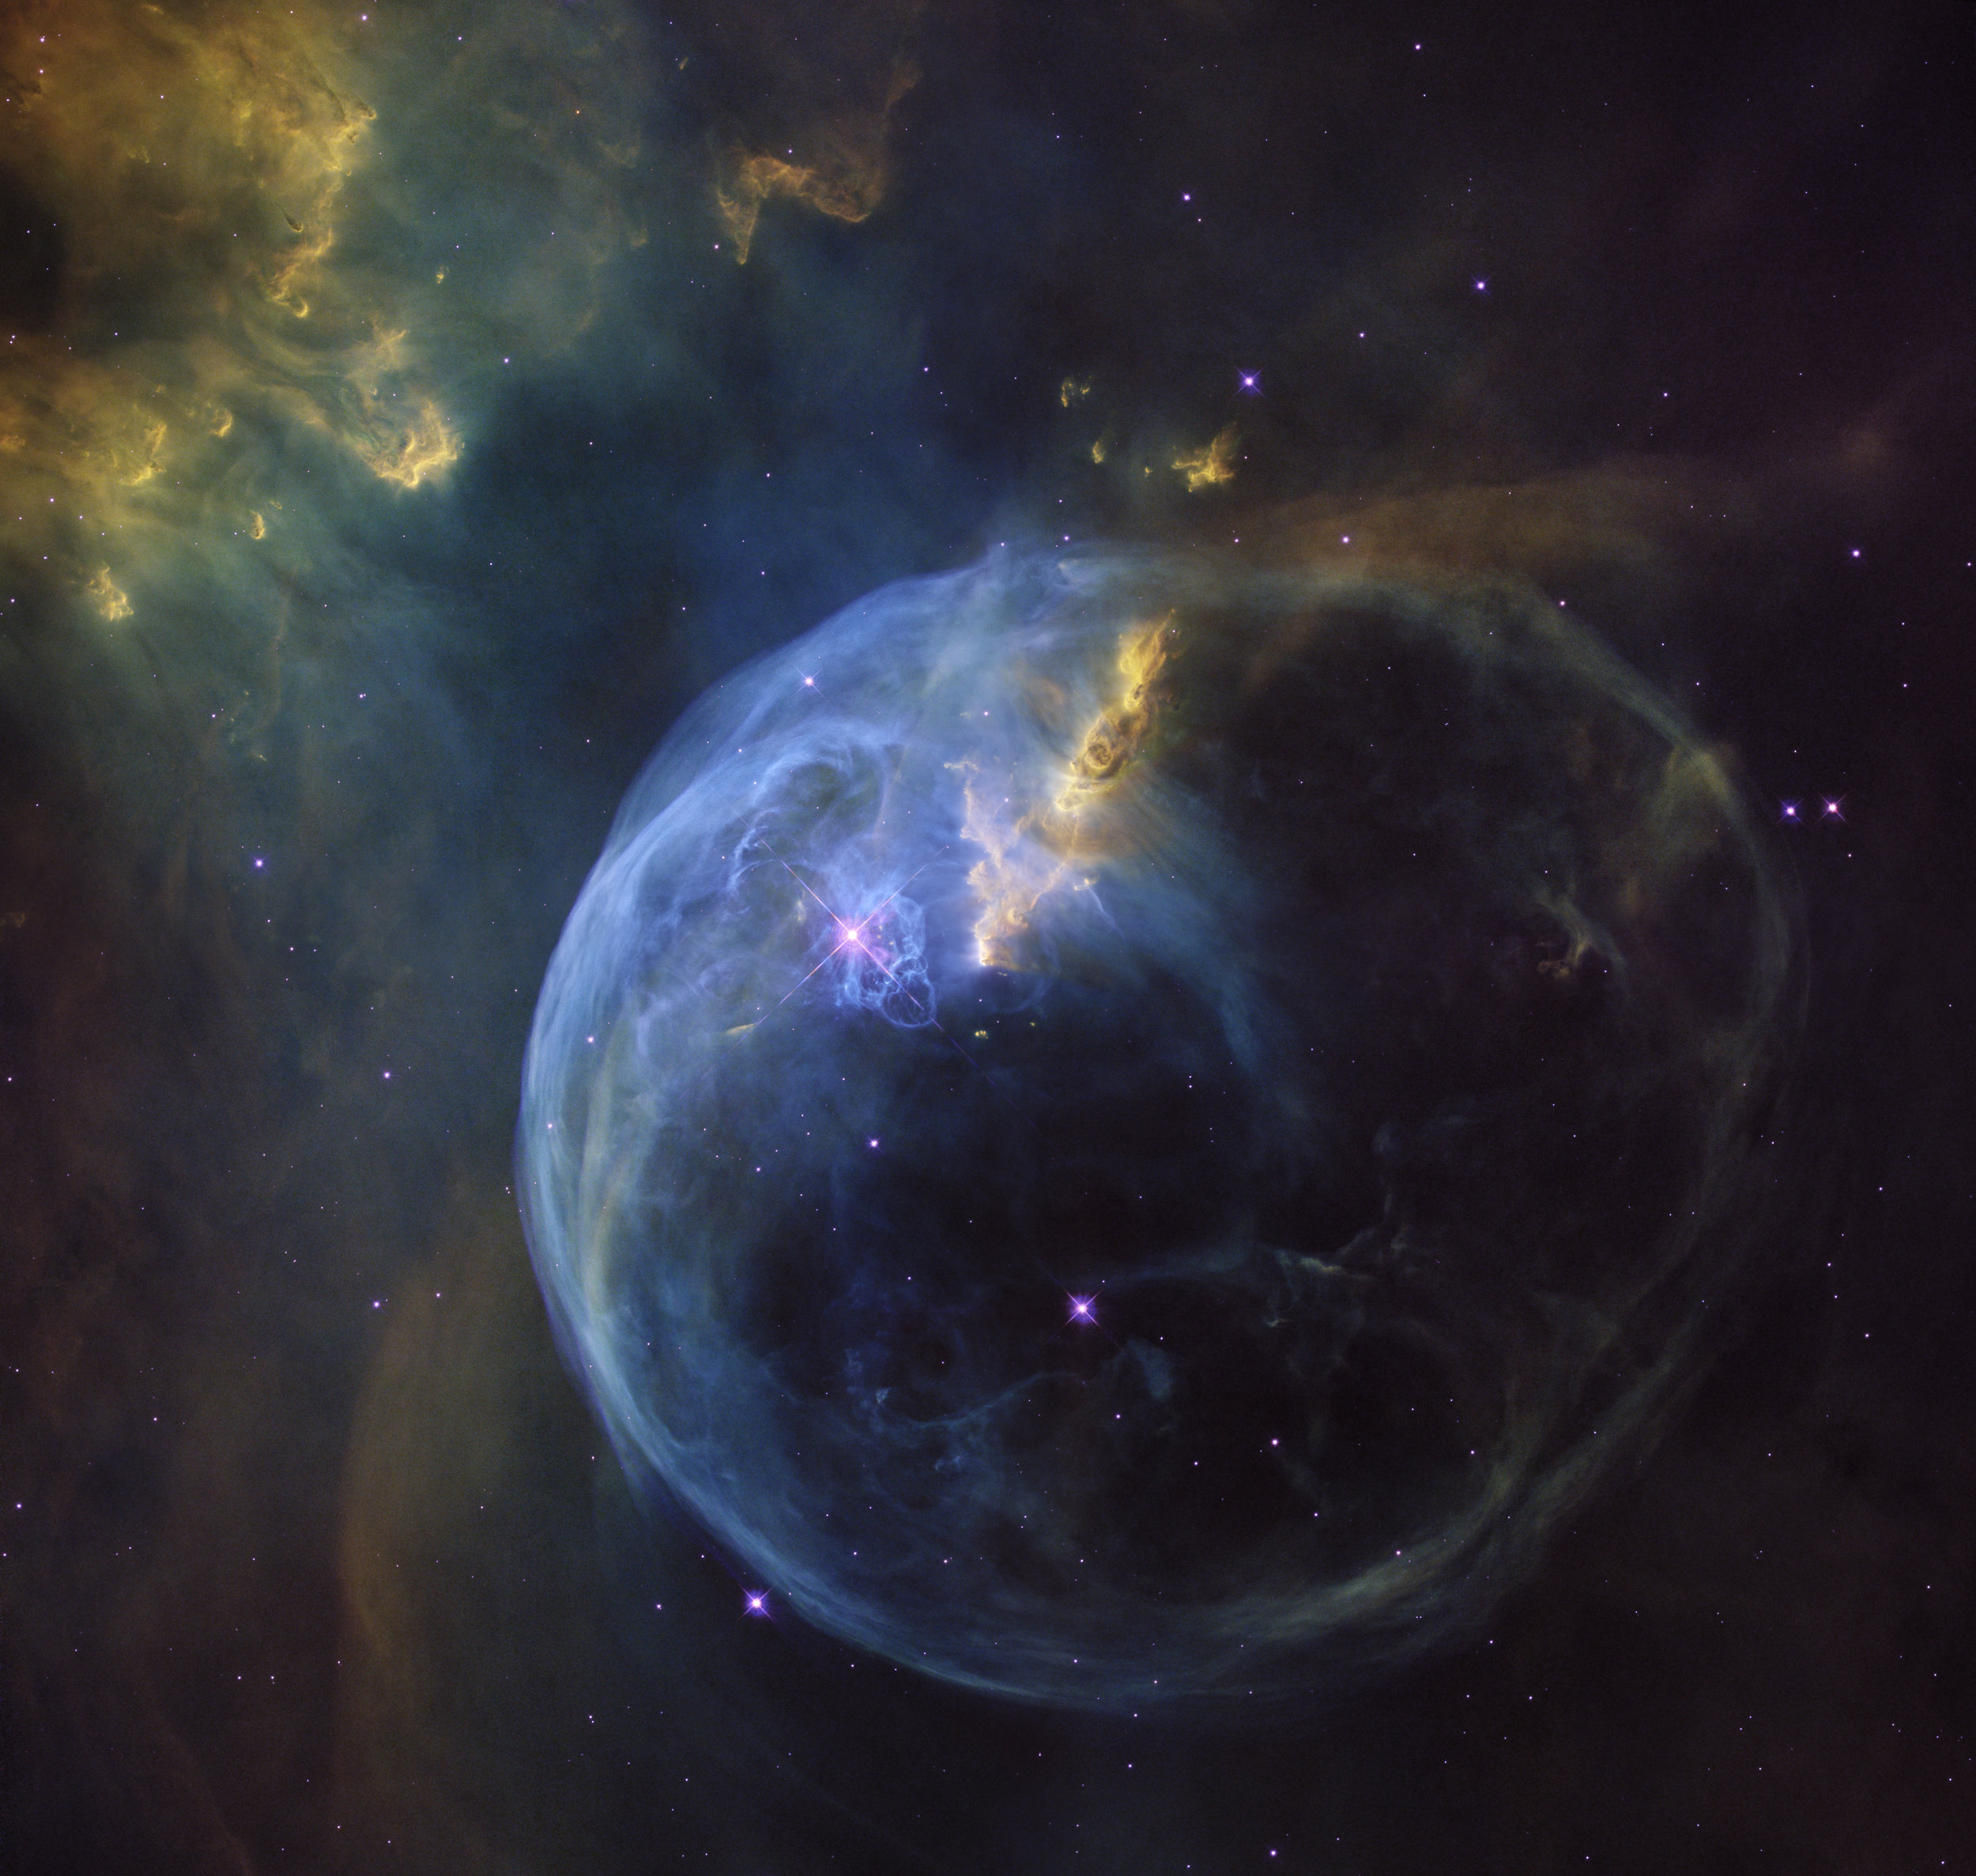 The Bubble Nebula, also known as NGC 7635, is an emission nebula located 8 000 light-years away. This stunning new image was observed by the NASA/ESA Hubble Space Telescope to celebrate its 26th year in space.   Credit:   NASA ,  ESA/Hubble  and the Hubble Heritage Team